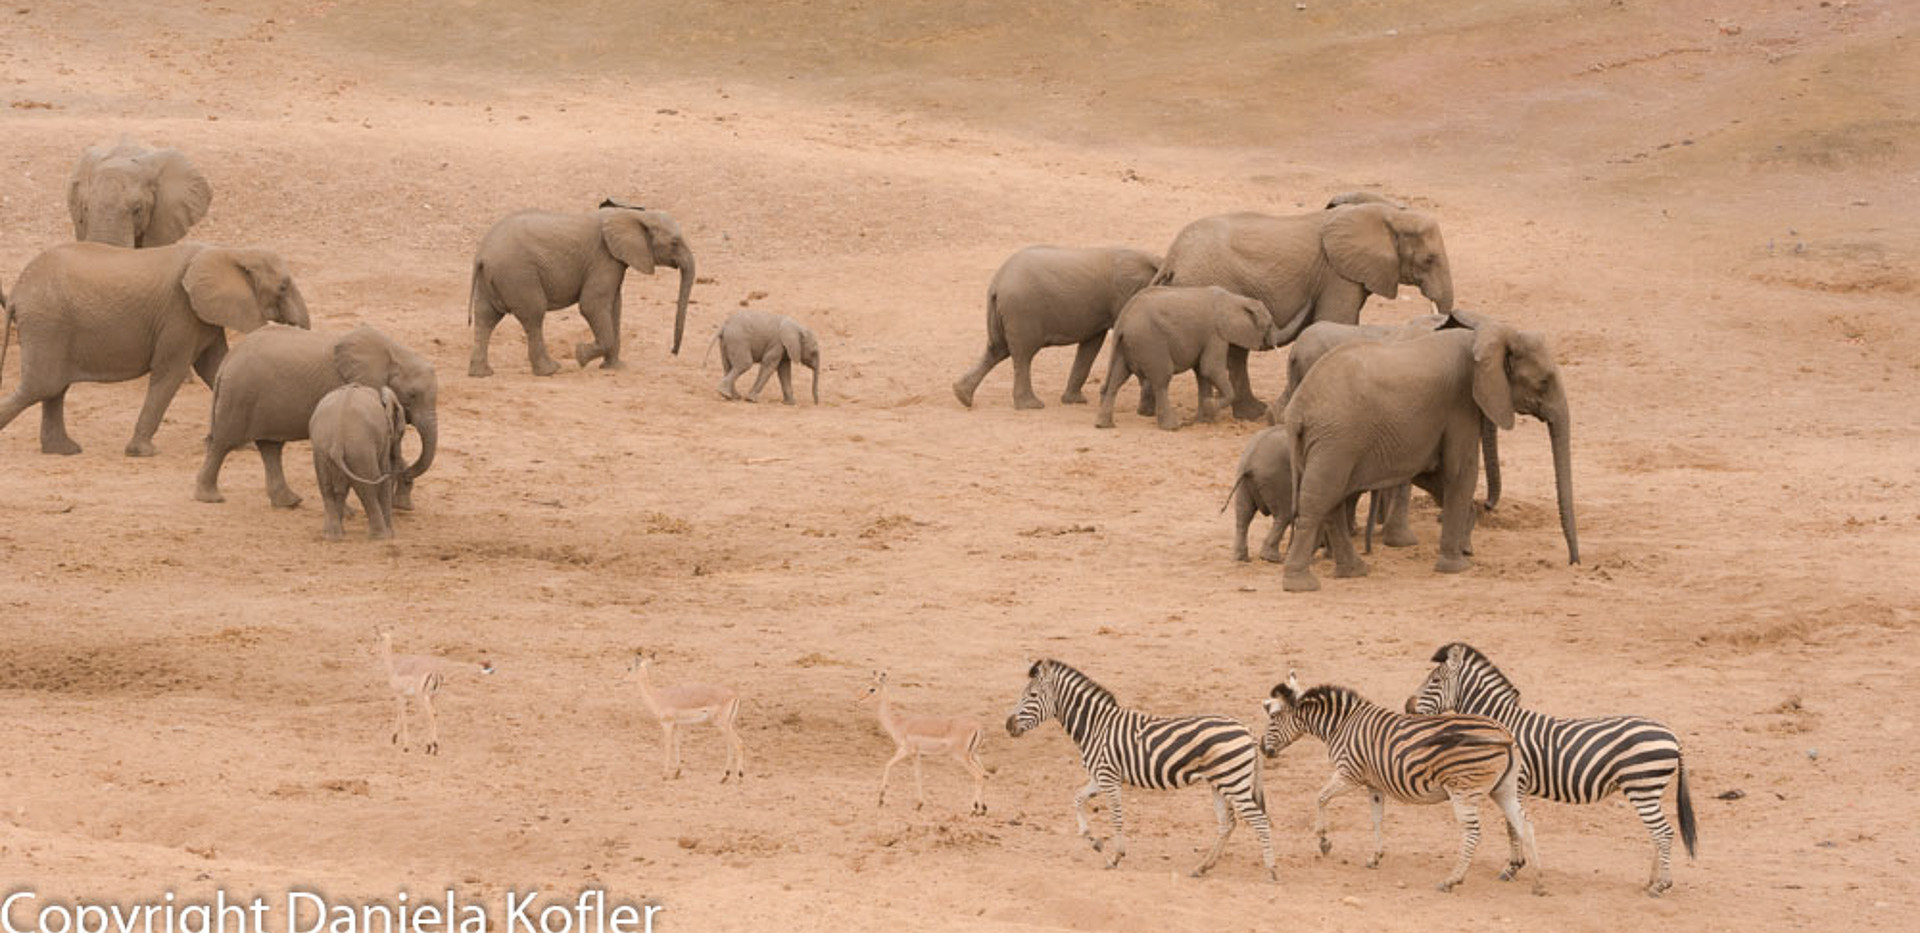 Breeding herd of elephants on the move with zebra